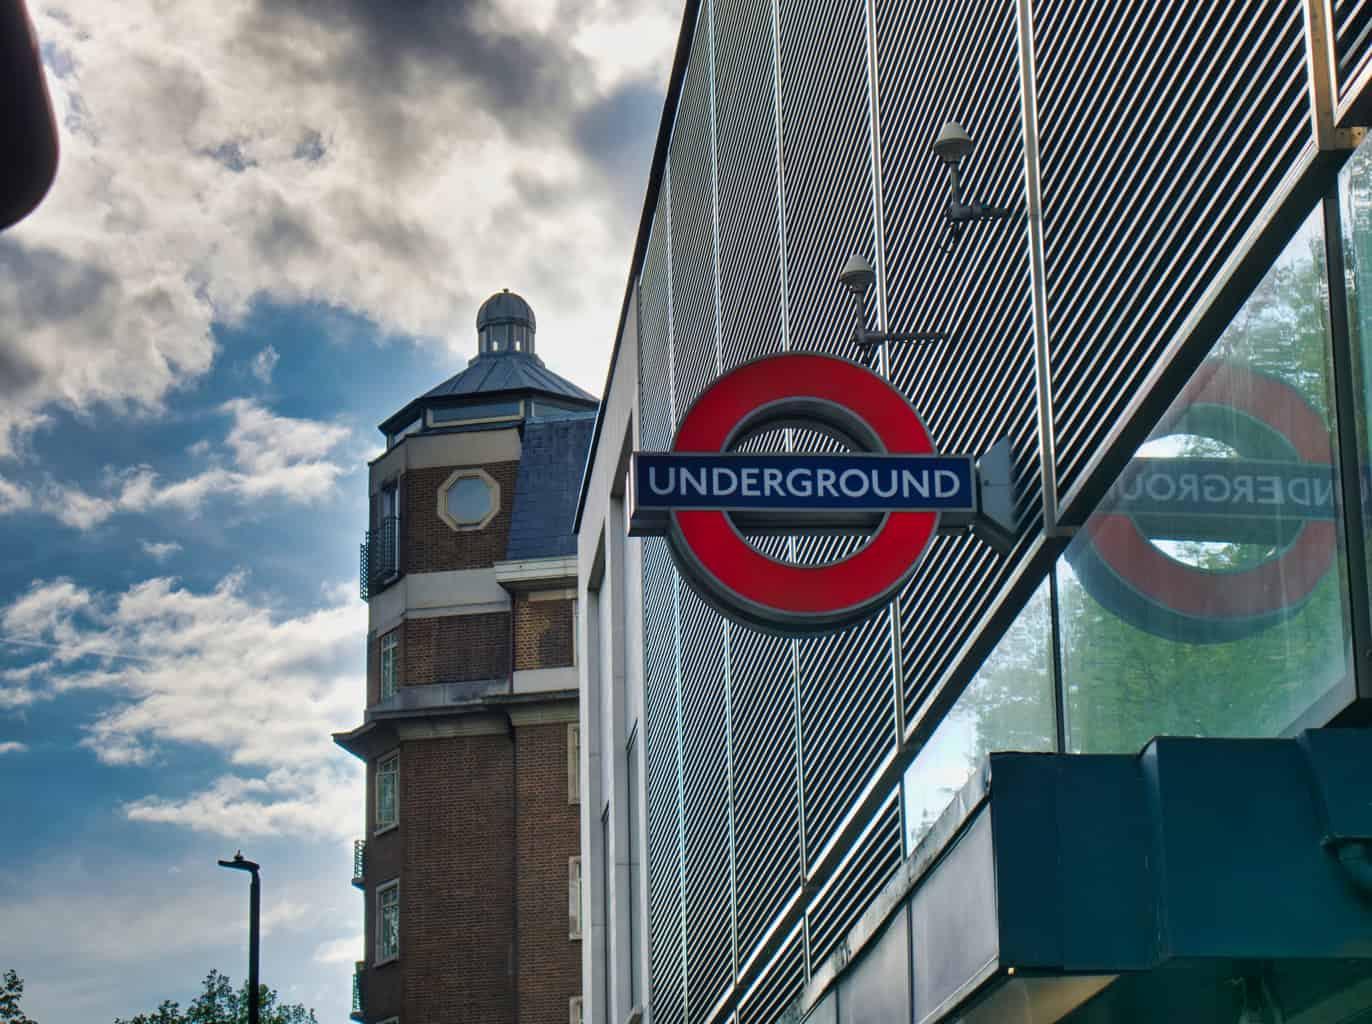 A London Undergound sign with ominous clouds and a building behind